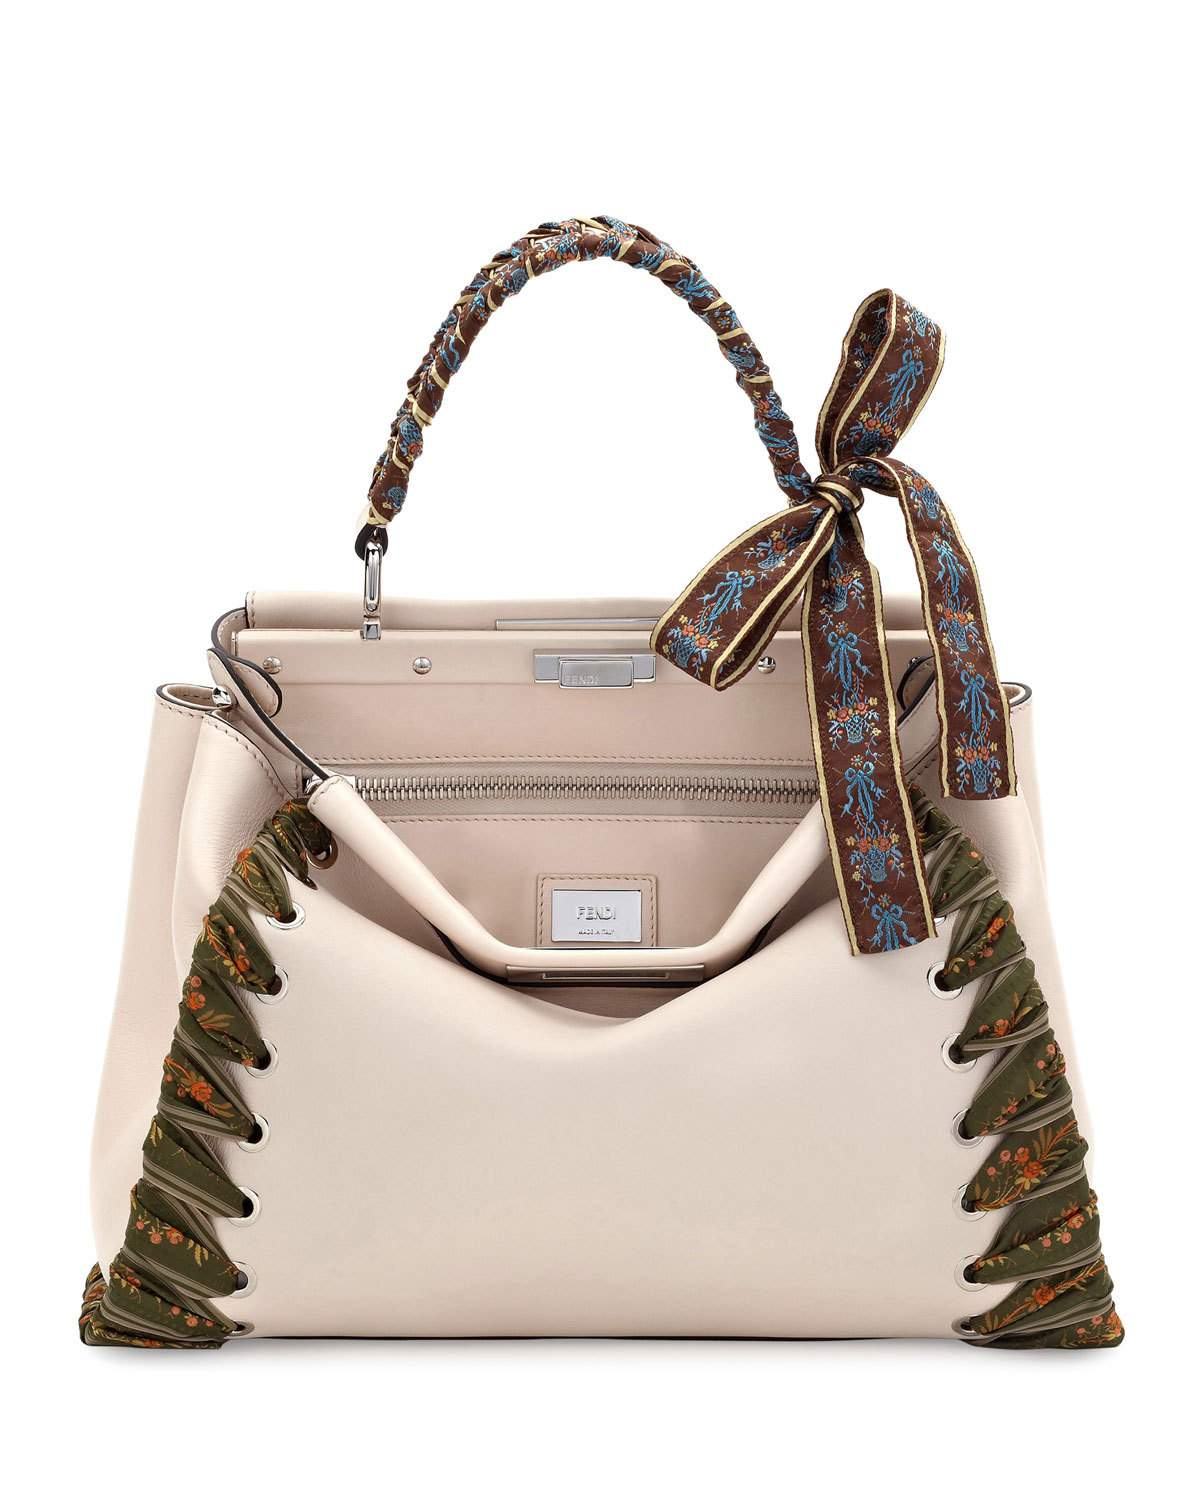 6d5d7abd202e Fendi Resort 2017 Bag Collection Featuring Floral Bags